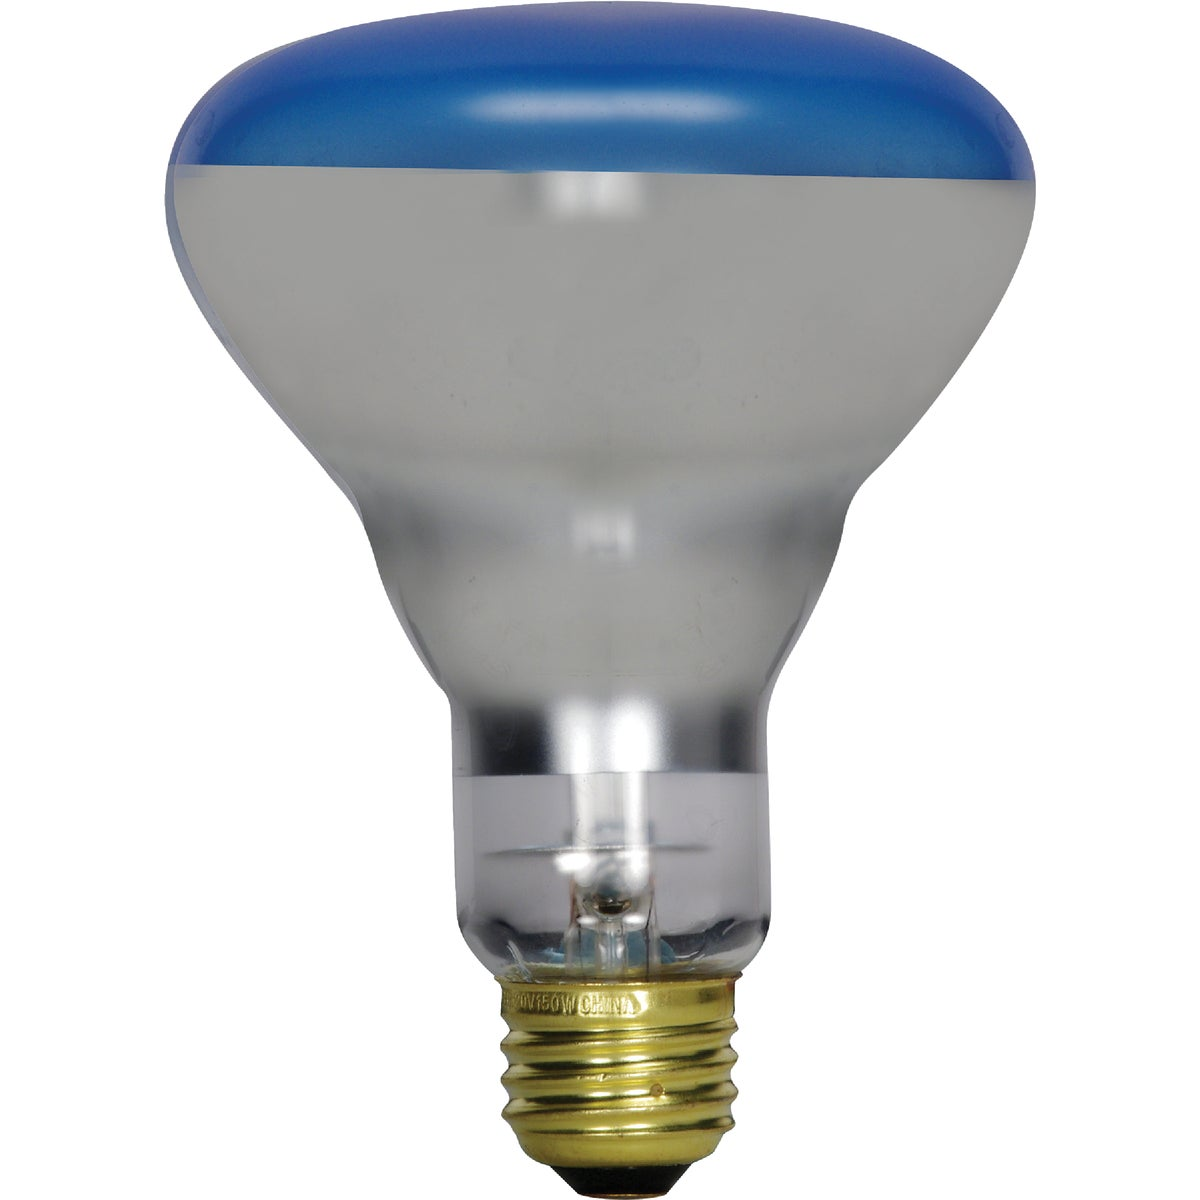 120W PLANT LIGHT BULB - 21000 120R40/PL by G E Lighting